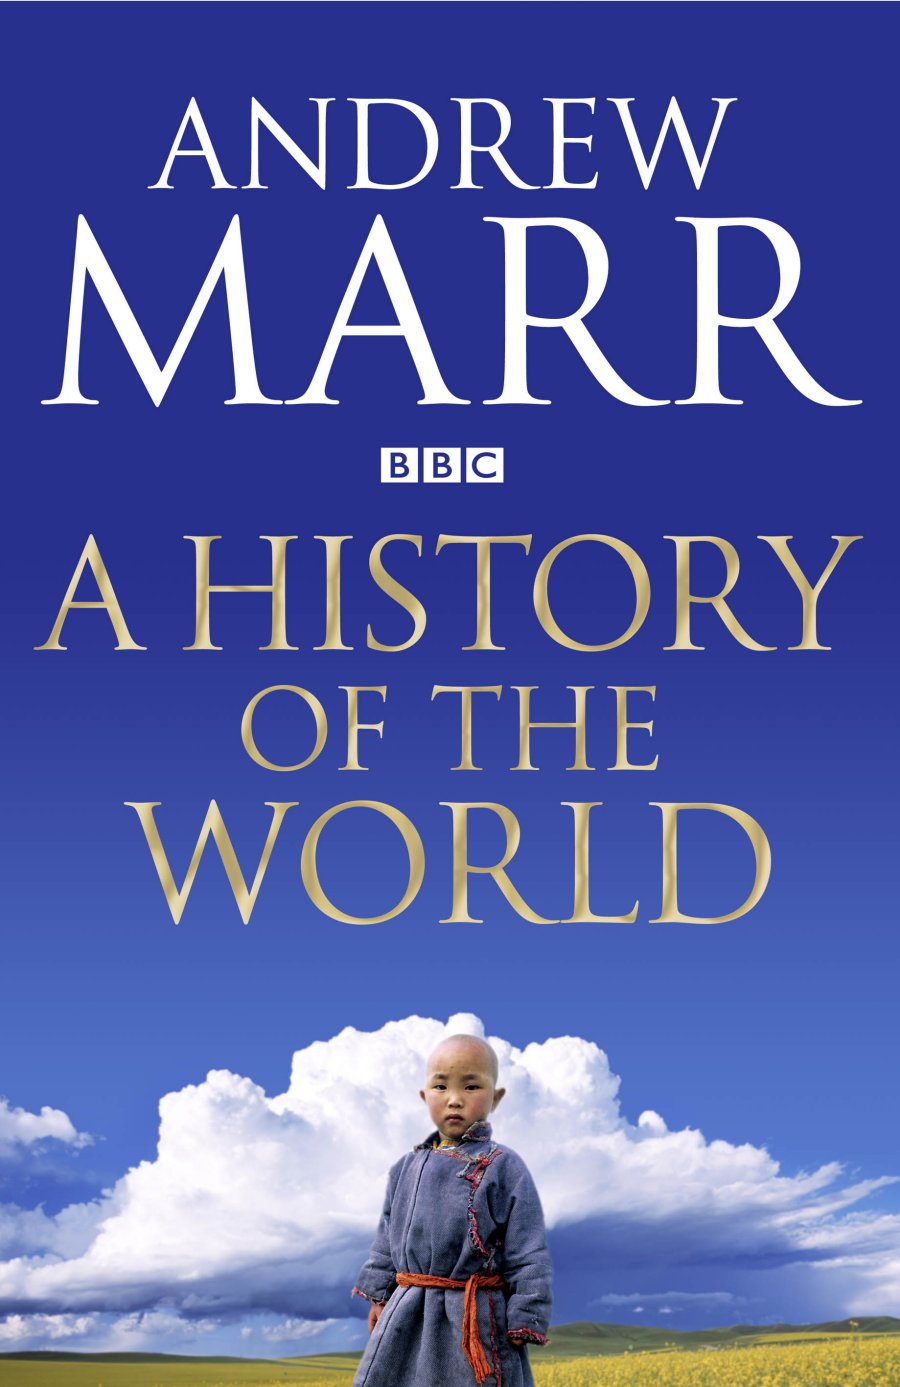 Fixers Mongolia - ANDREW MARR: A HISTORY OF THE WORLD, BBC